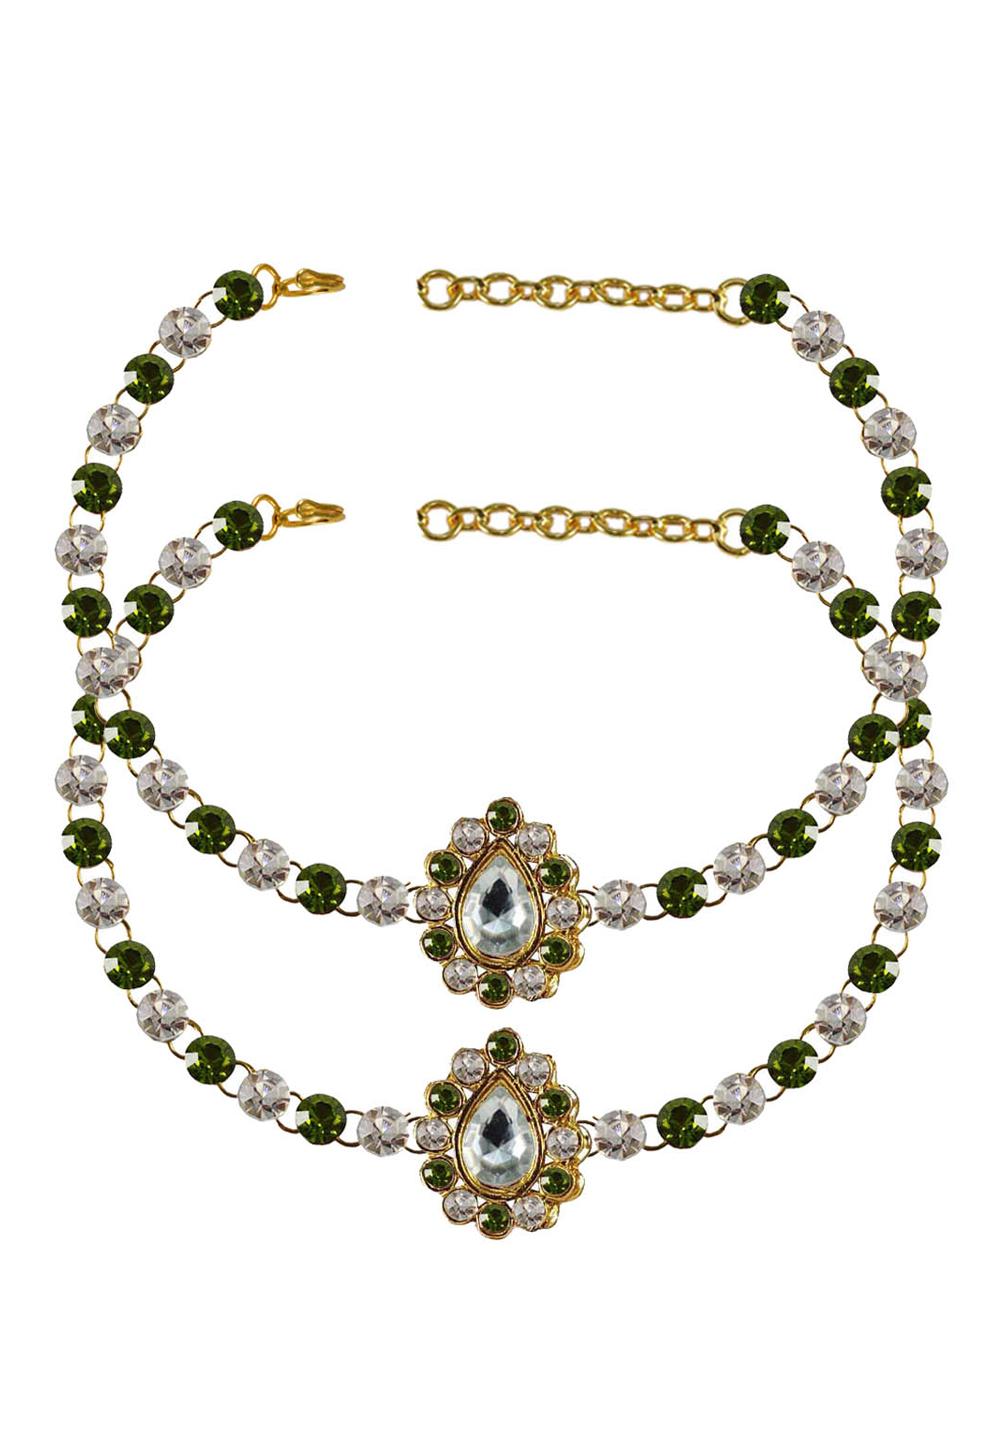 Green Brass Gold Plated Anklets 171365